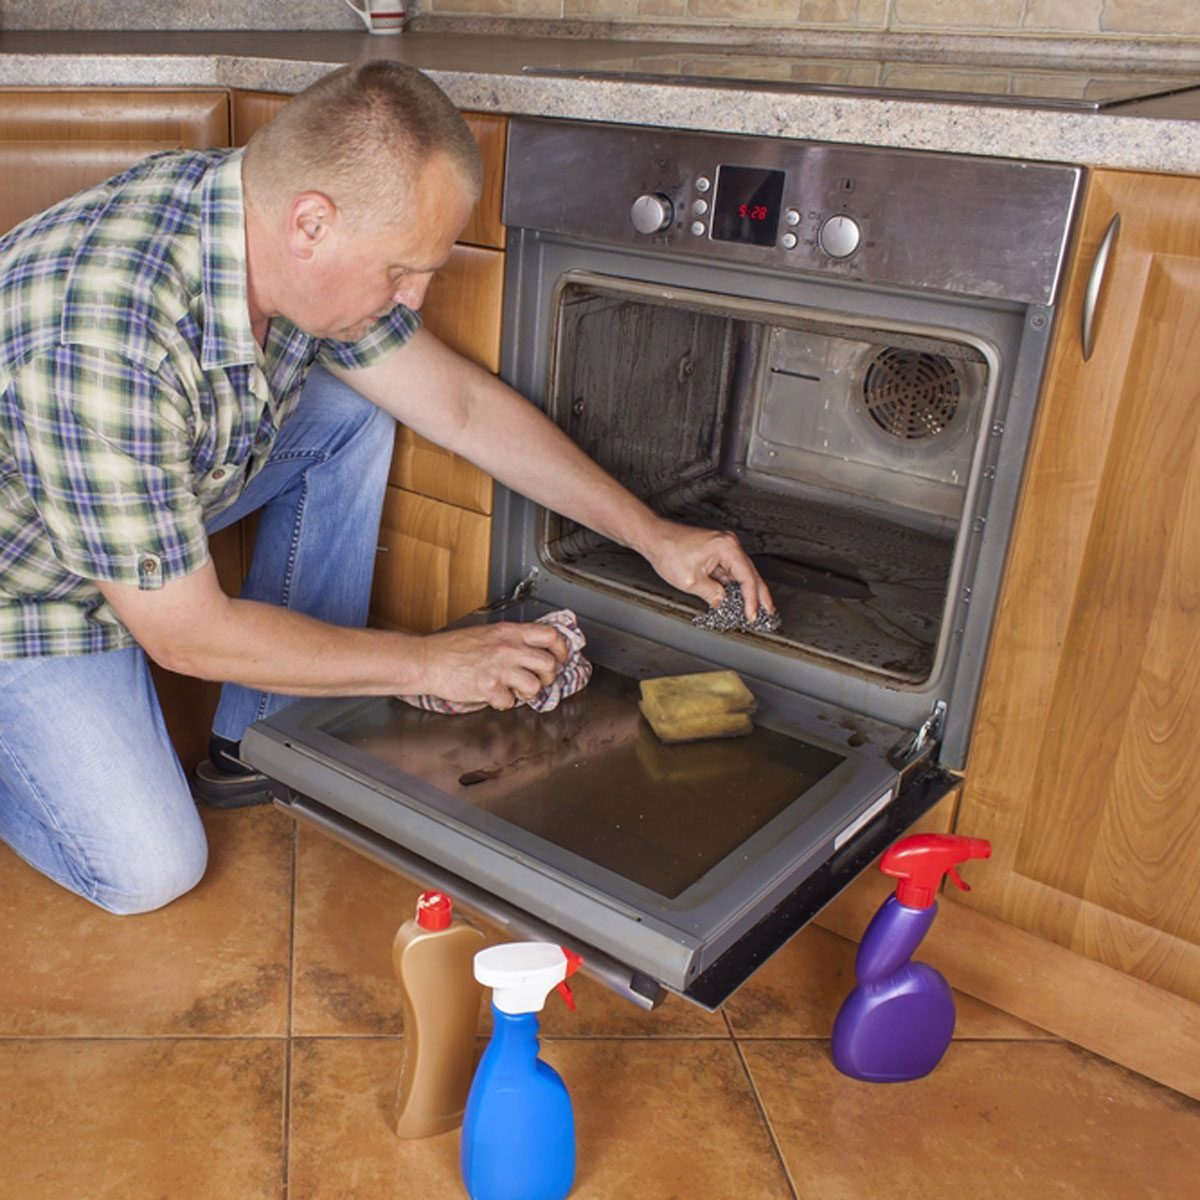 Clean the oven